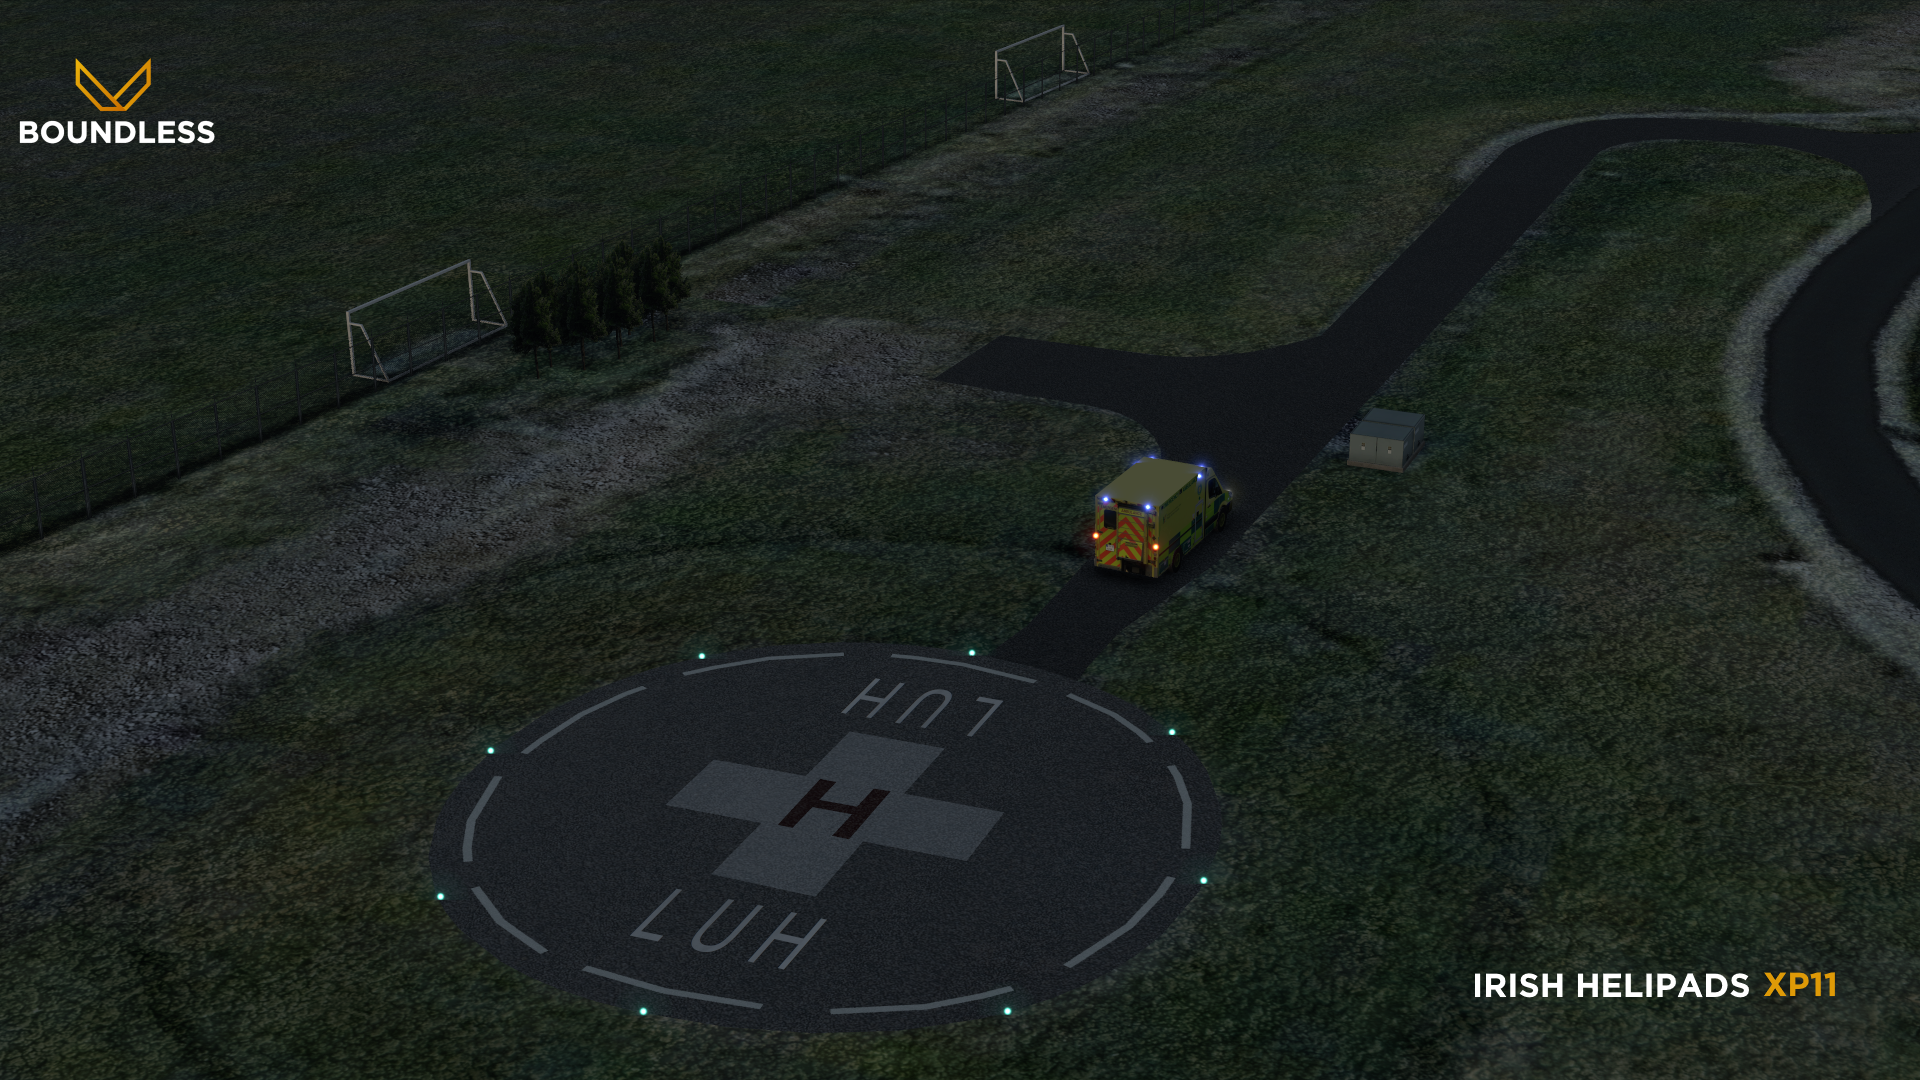 BOUNDLESS - IRISH HELIPADS X-PLANE 11